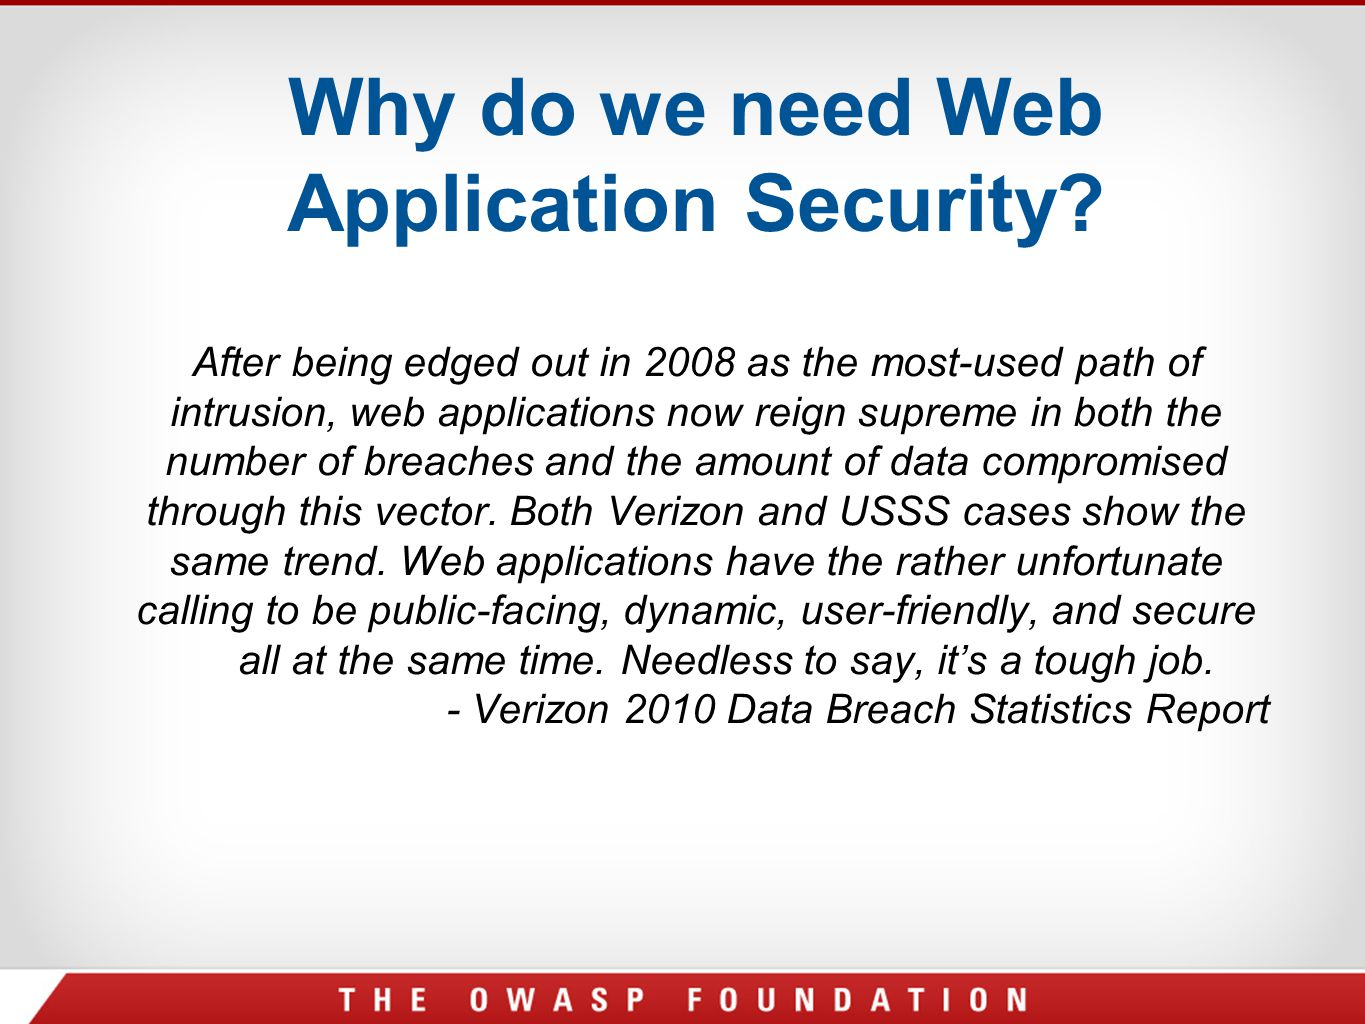 Why do we need Web Application Security